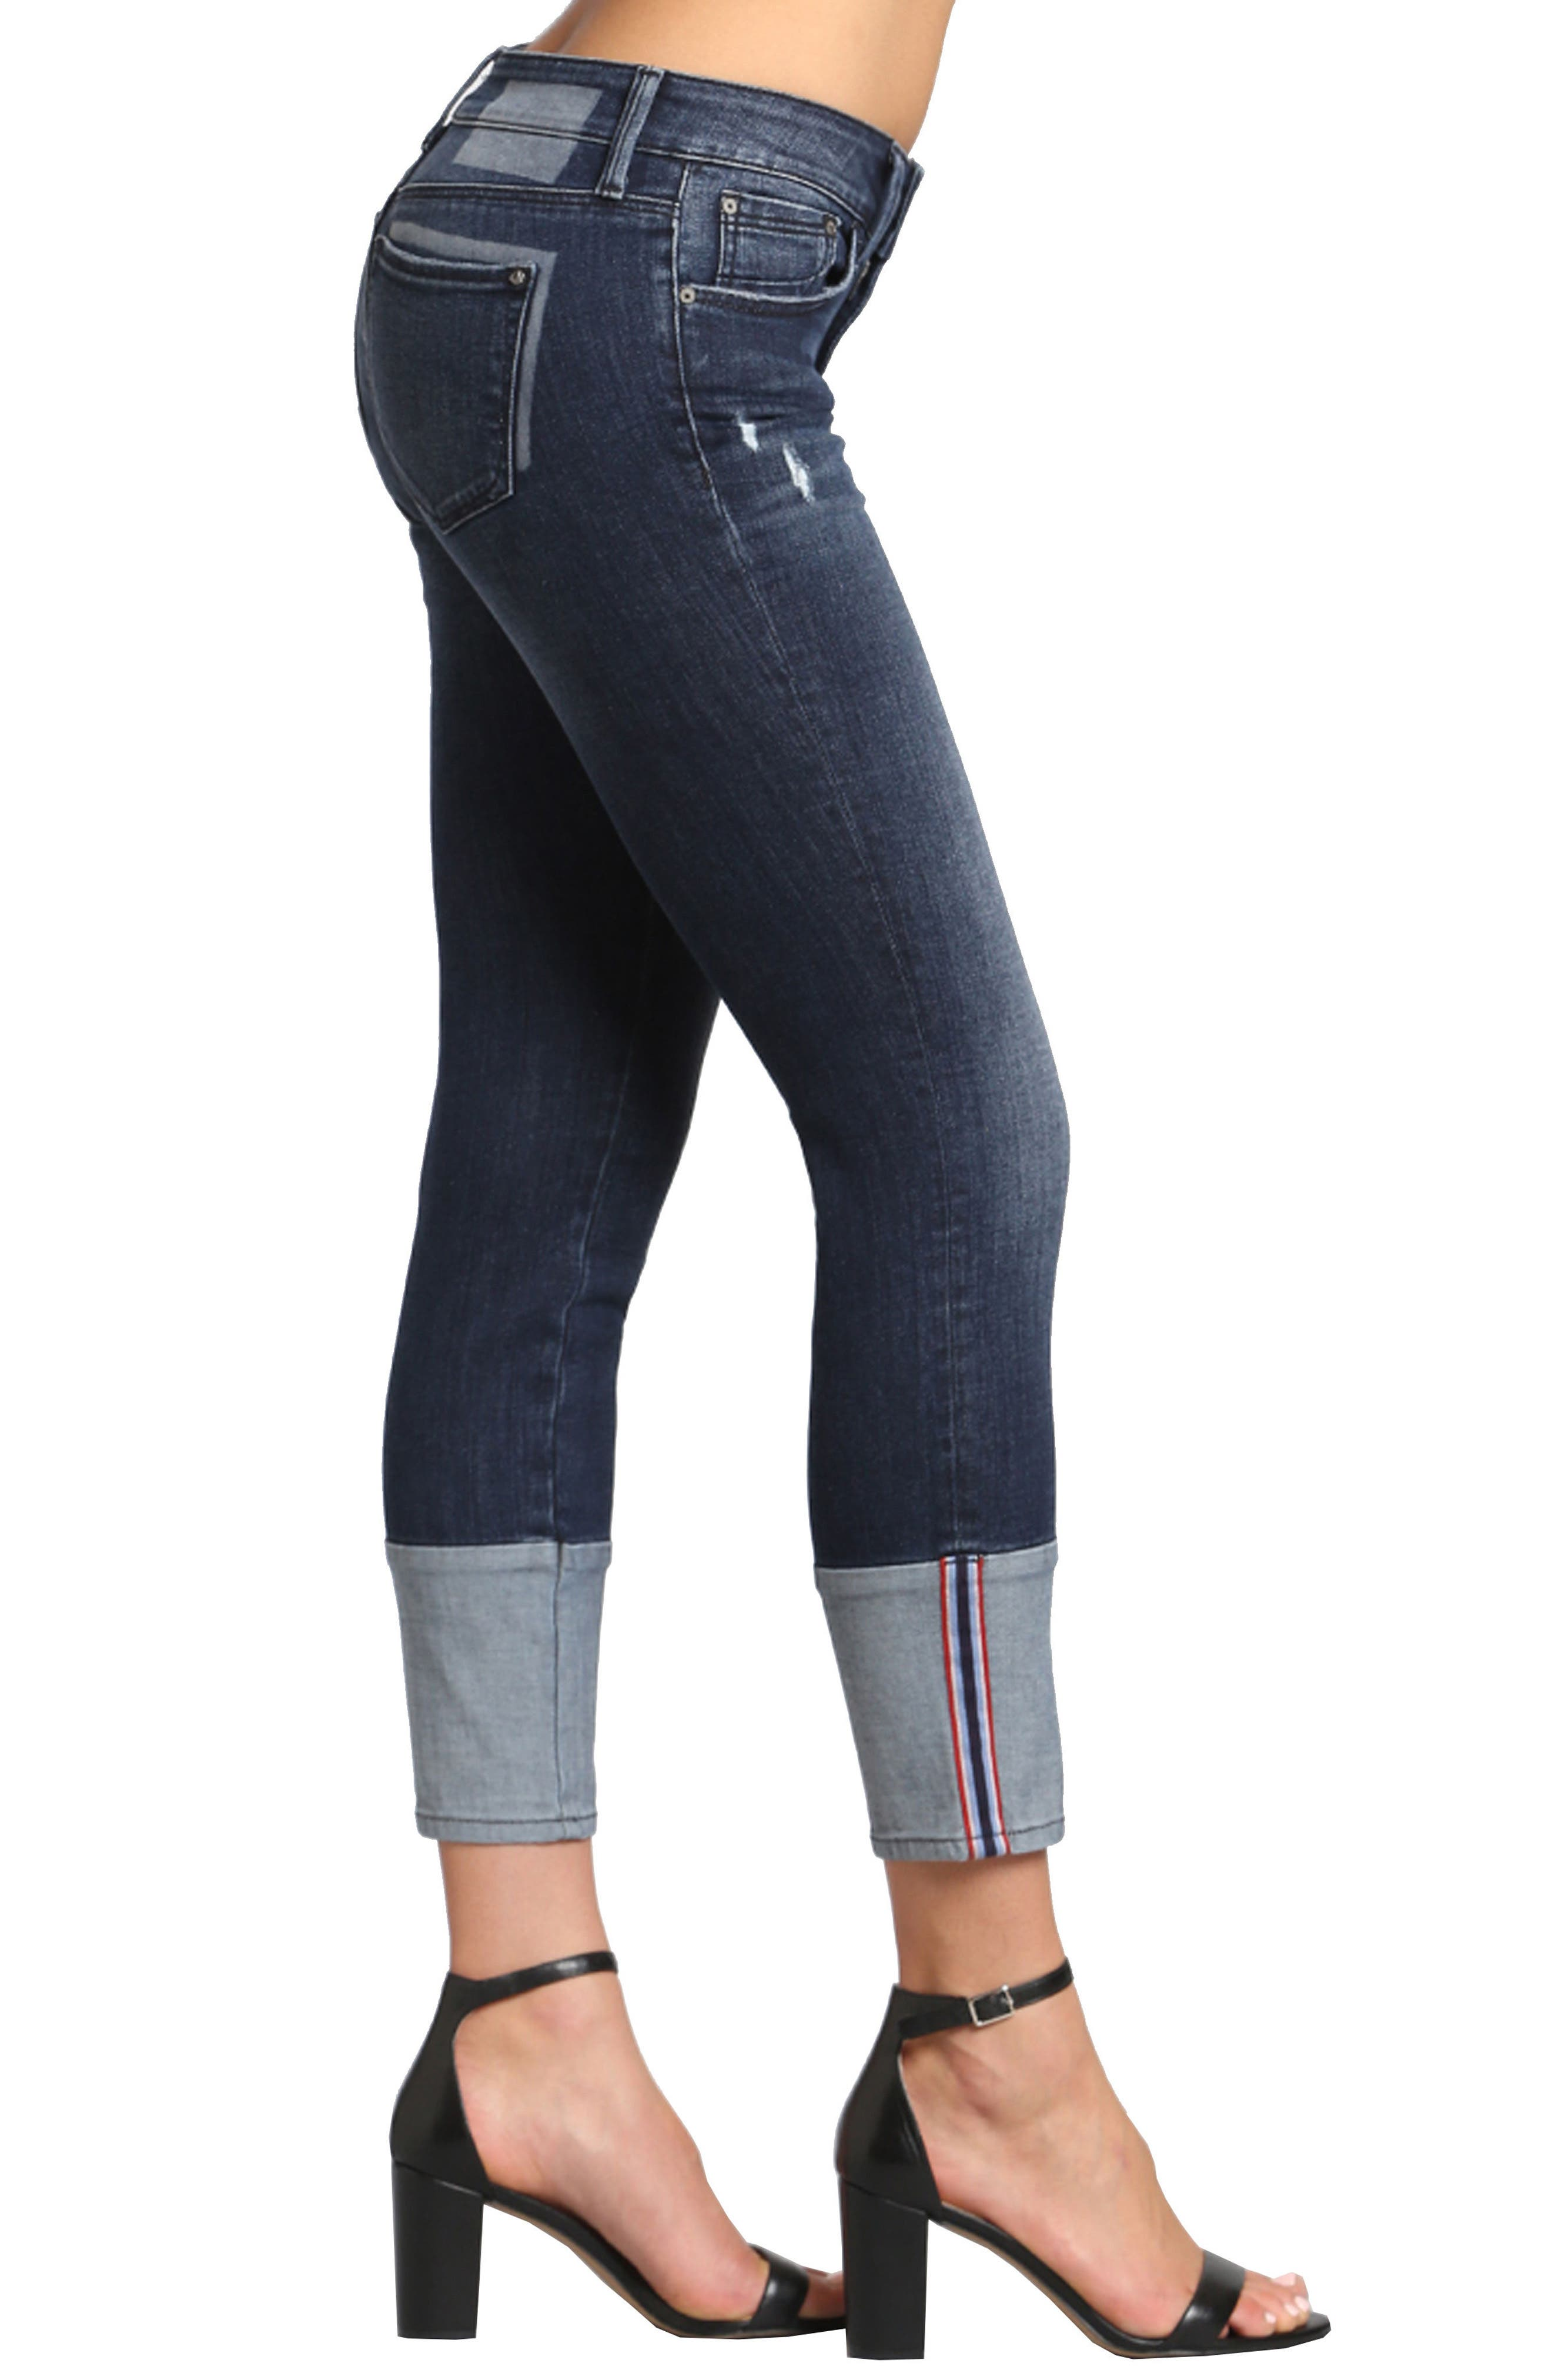 Caisy Cuffed Skinny Crop Jeans,                             Alternate thumbnail 3, color,